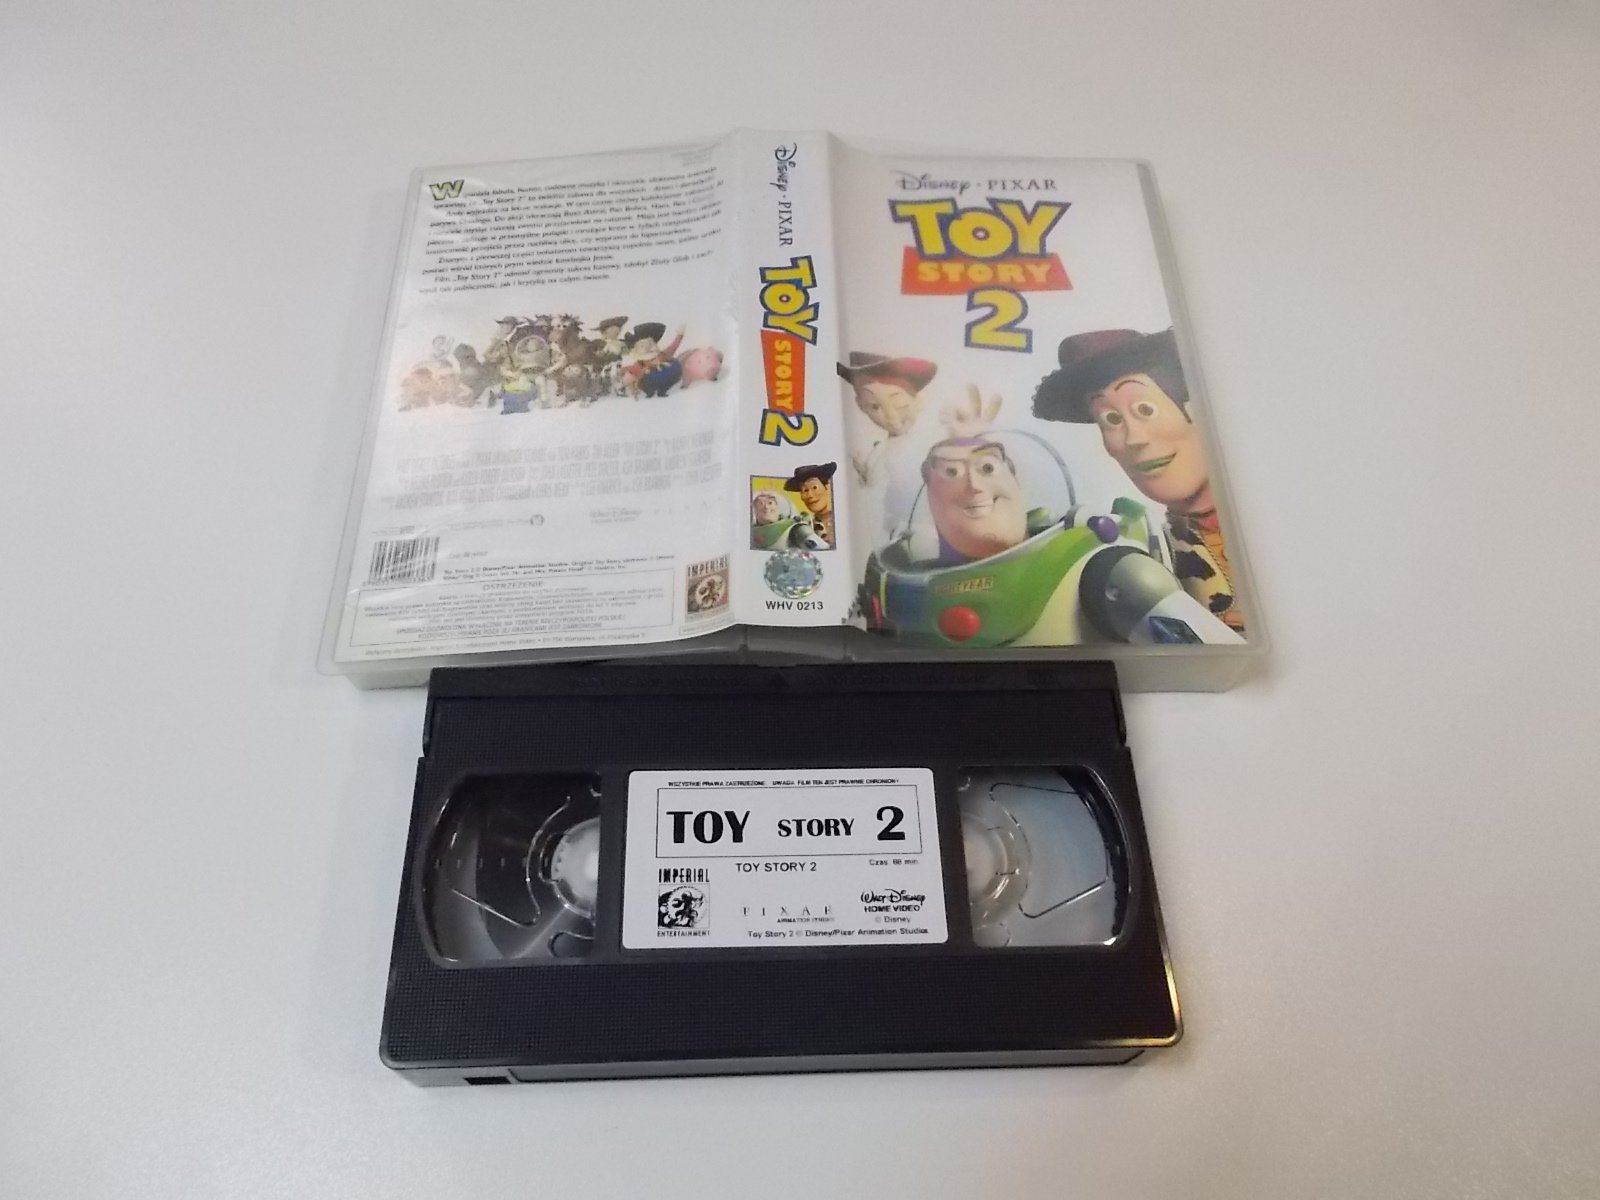 TOY STORY 2 - VHS Kaseta Video - Opole 1678